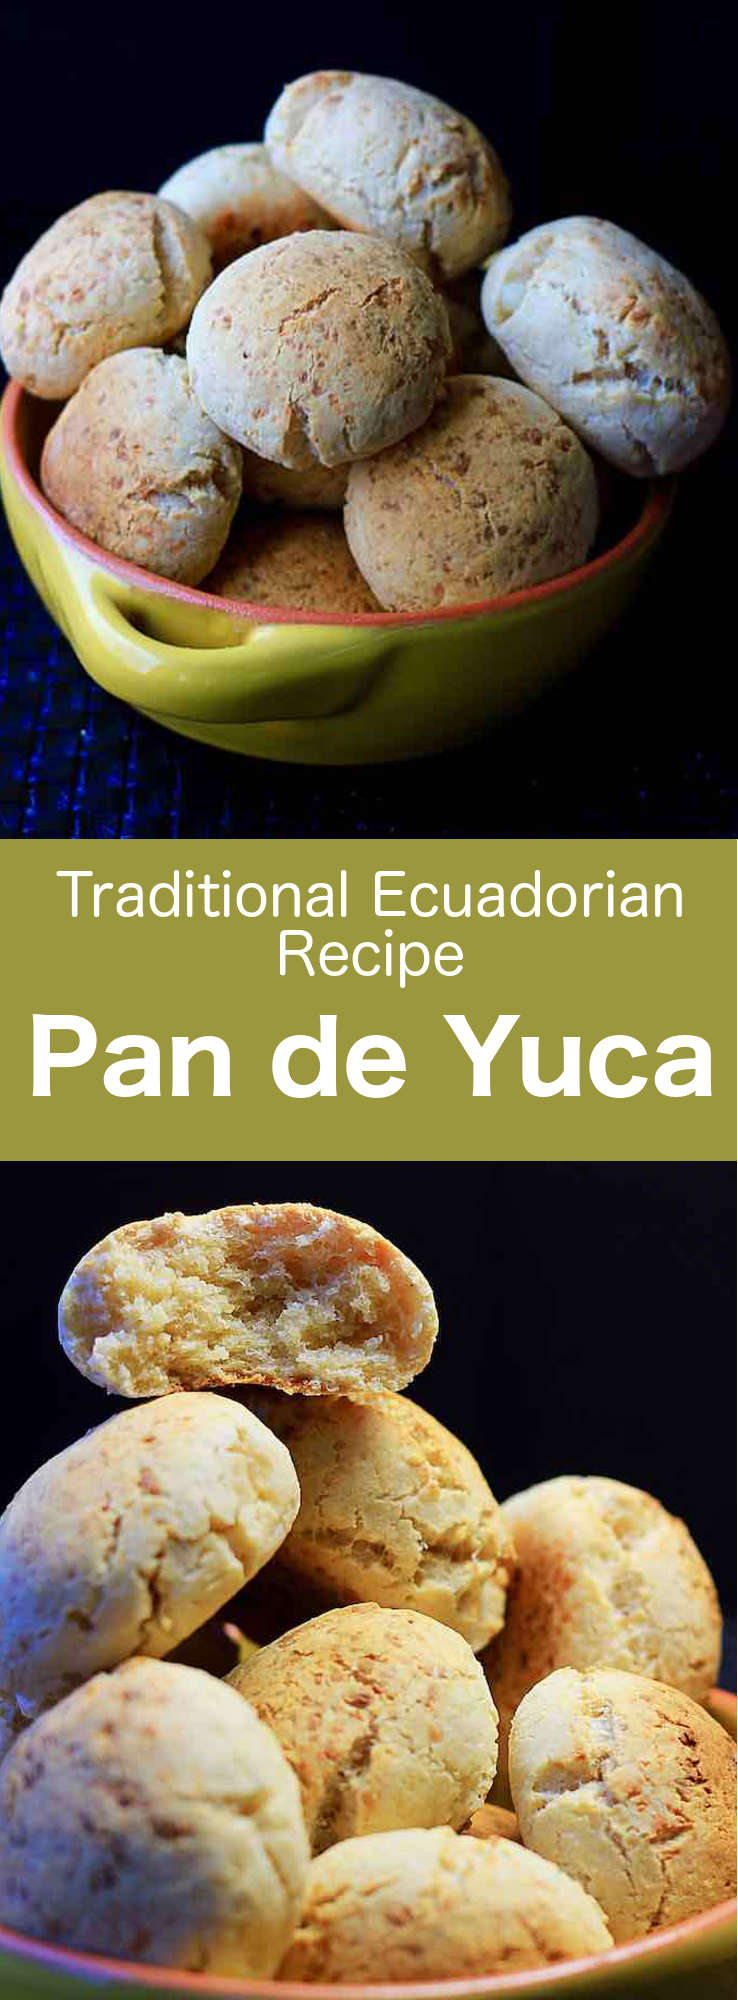 Pan de yuca (cassava bread) is a small bun made of cassava flour and cheese, typical of the coastal region of Ecuador and southern Colombia. #Ecuador #EcuadorFood #EcuadorianCuisine #EcuadorianRecipe #WorldCuisine #196flavors